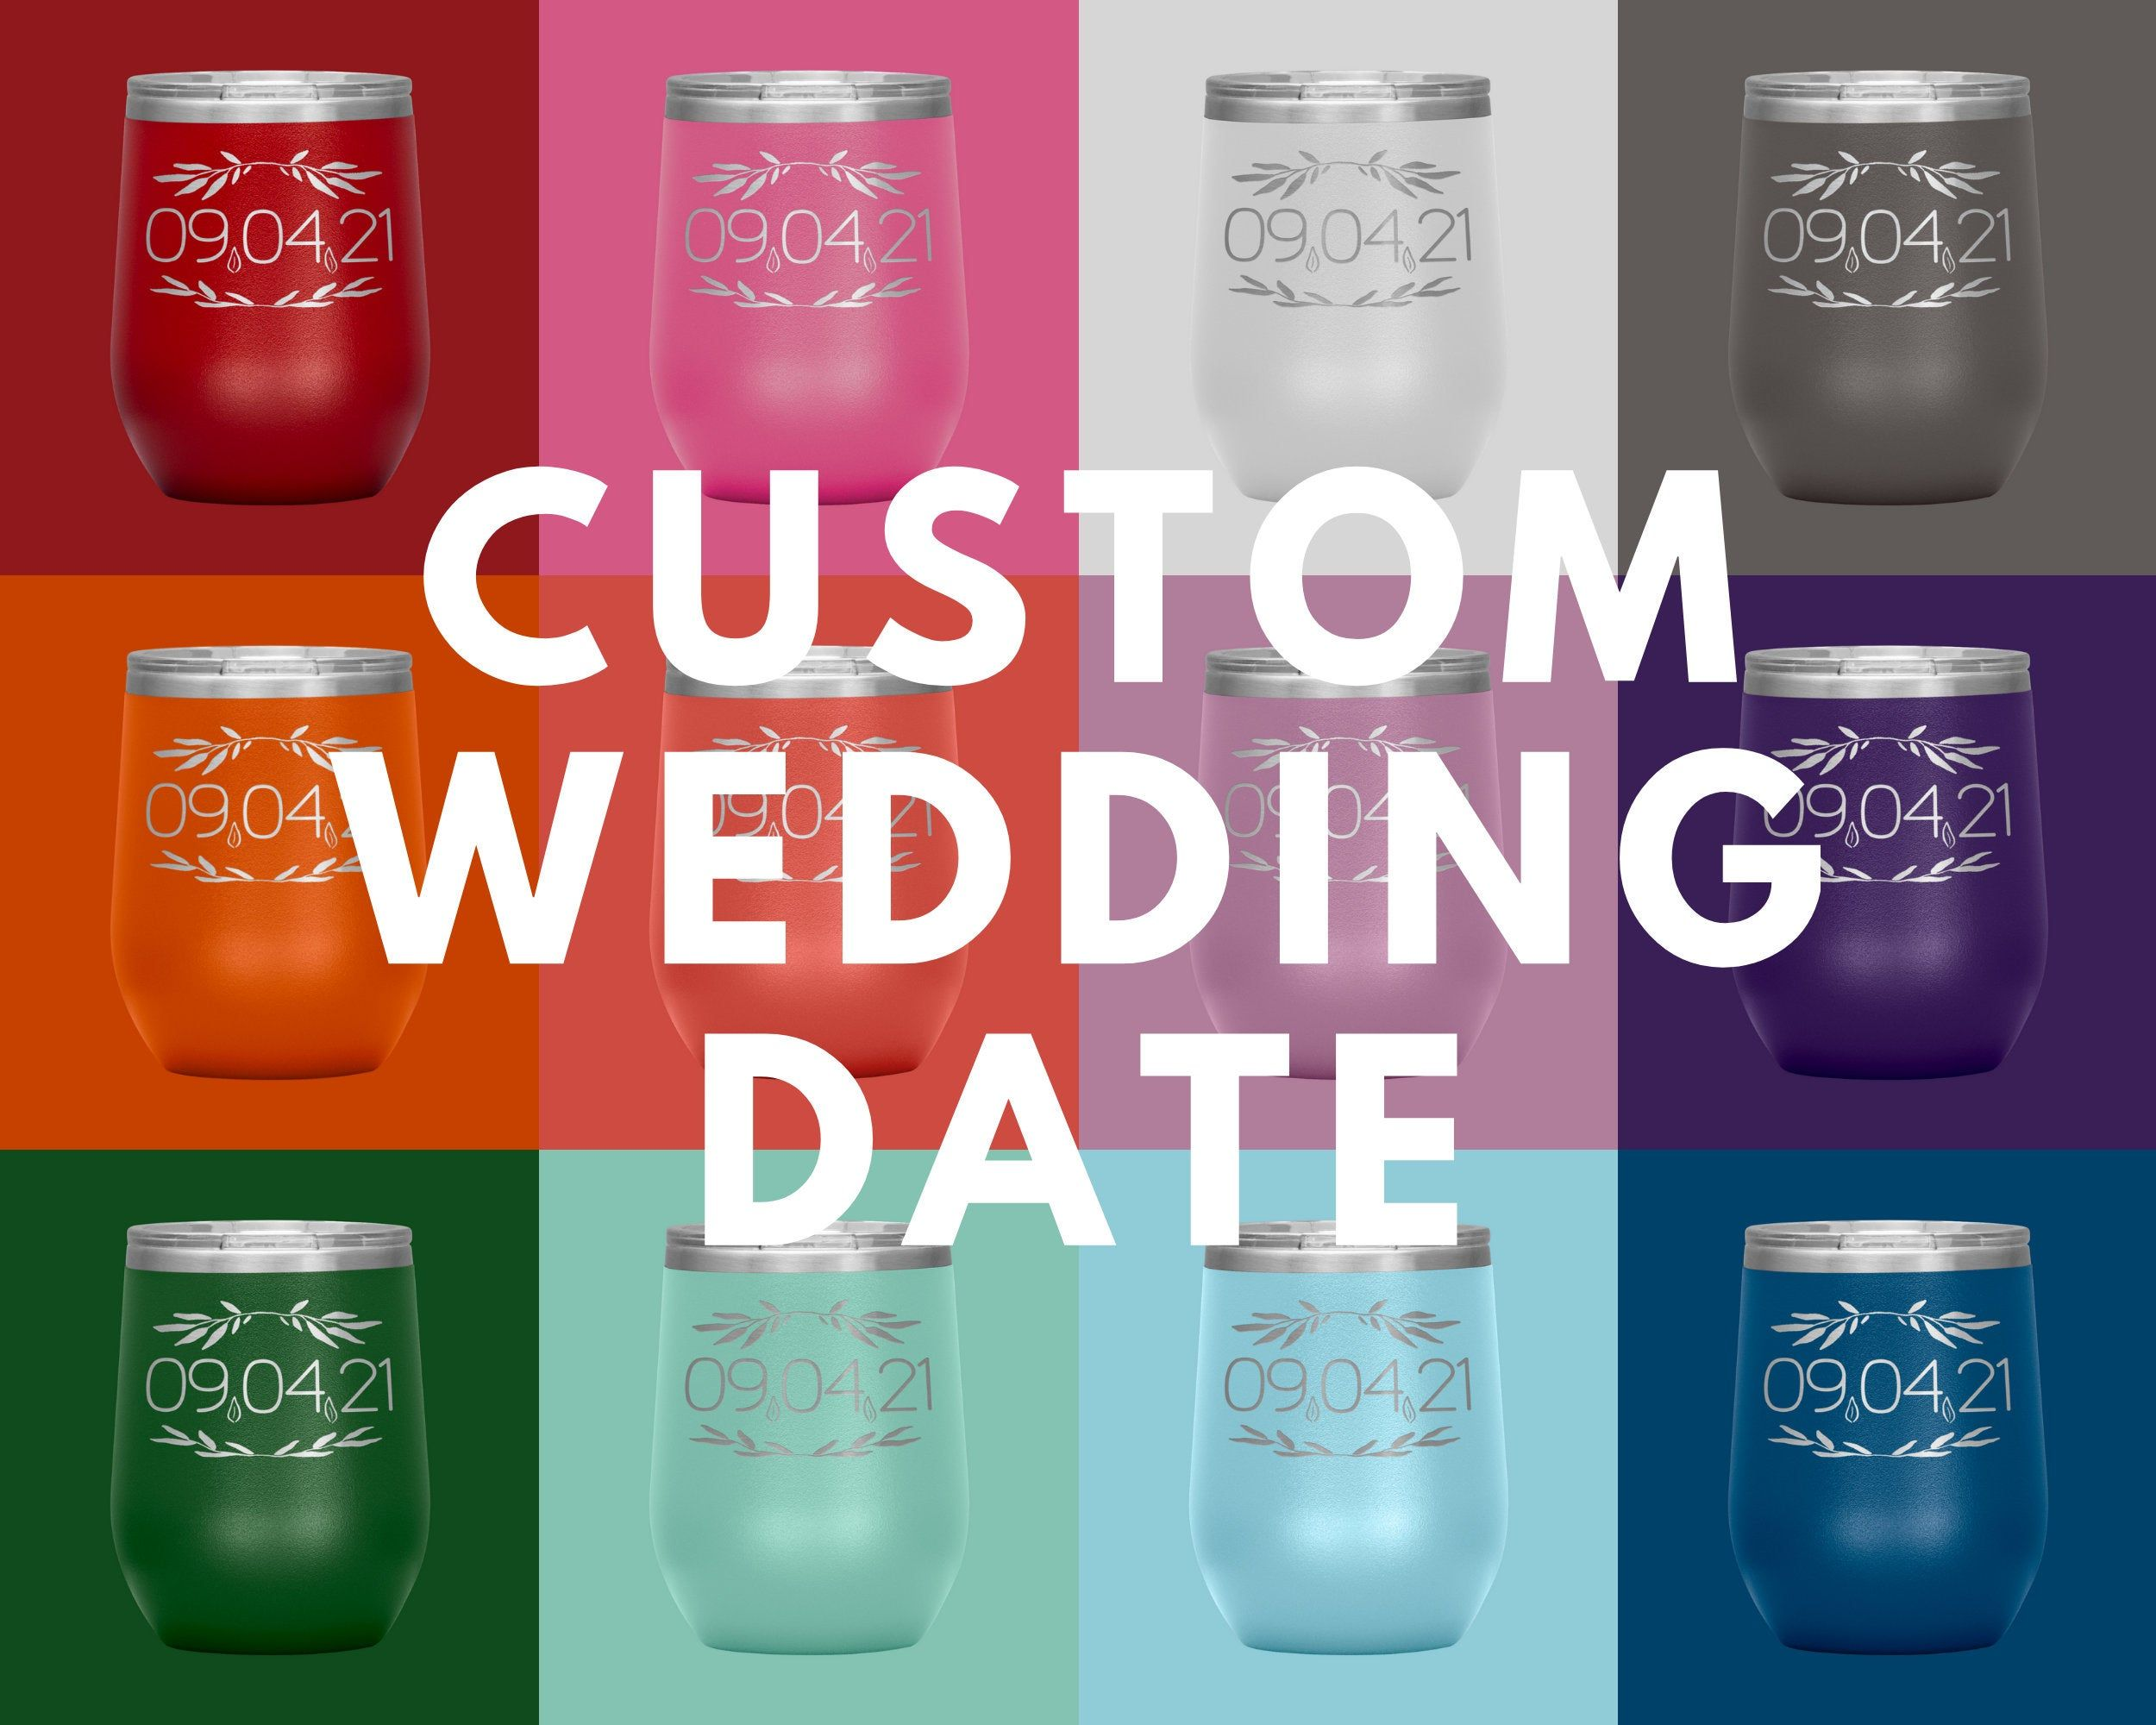 Personalized Wine Tumbler Wedding Date Stainless Steel Wine Glass Stemless Sippy Cup Tumblers For Bride And Groom In 2020 Bridal Party Gifts Etsy Wedding Bride Wine